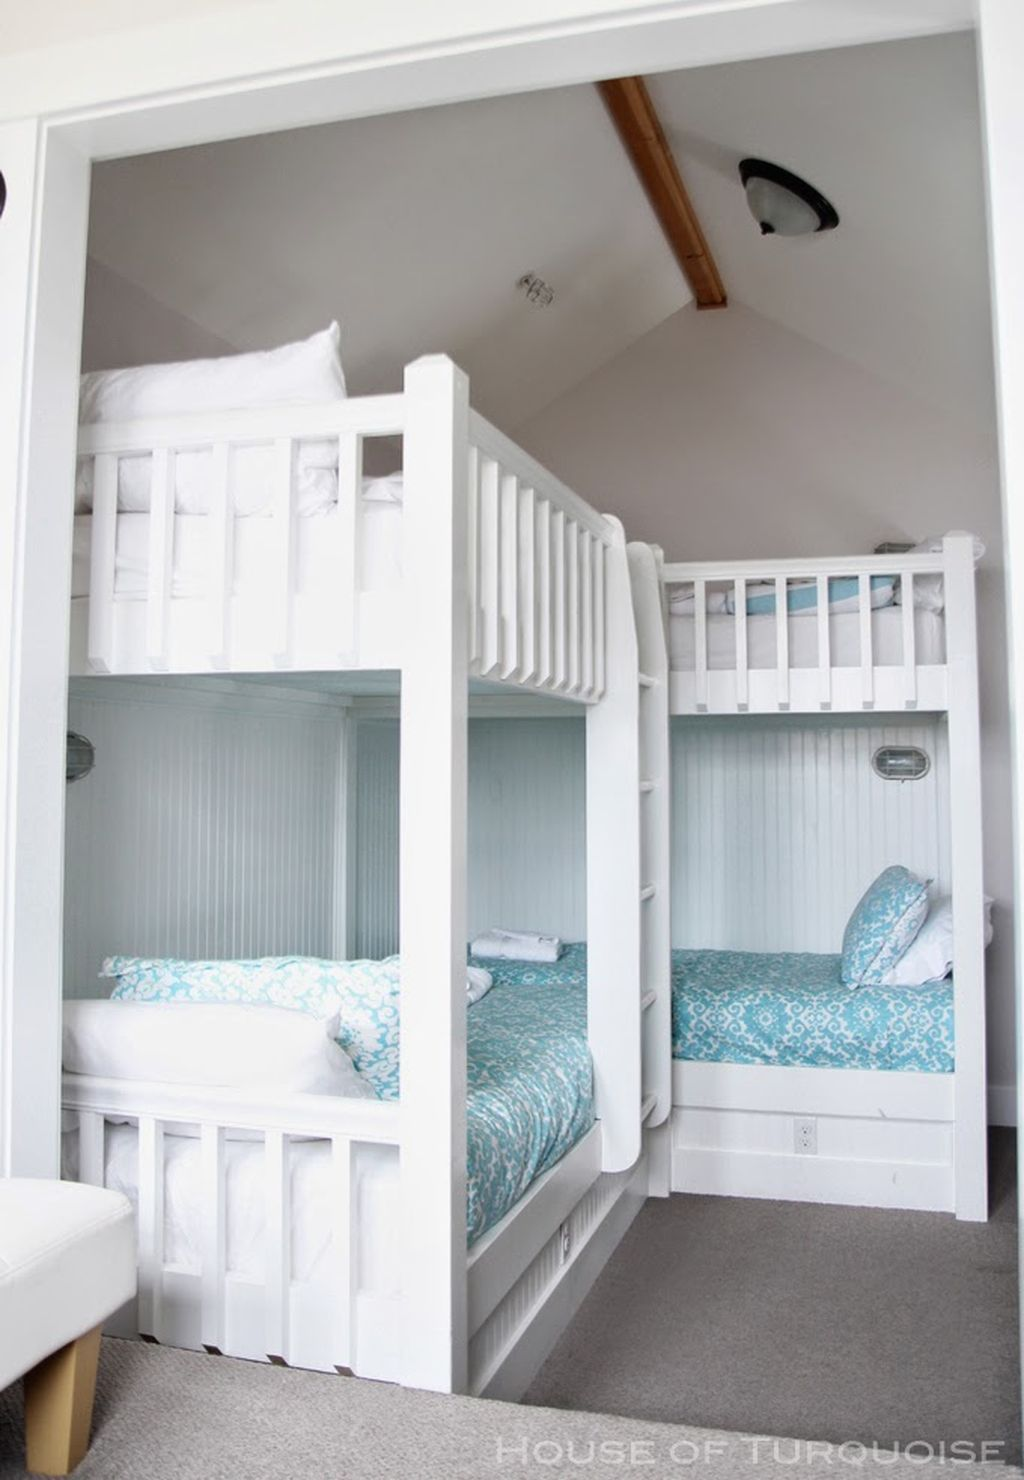 75 Cute Boys Bedroom Design Ideas for Small Space Bunk